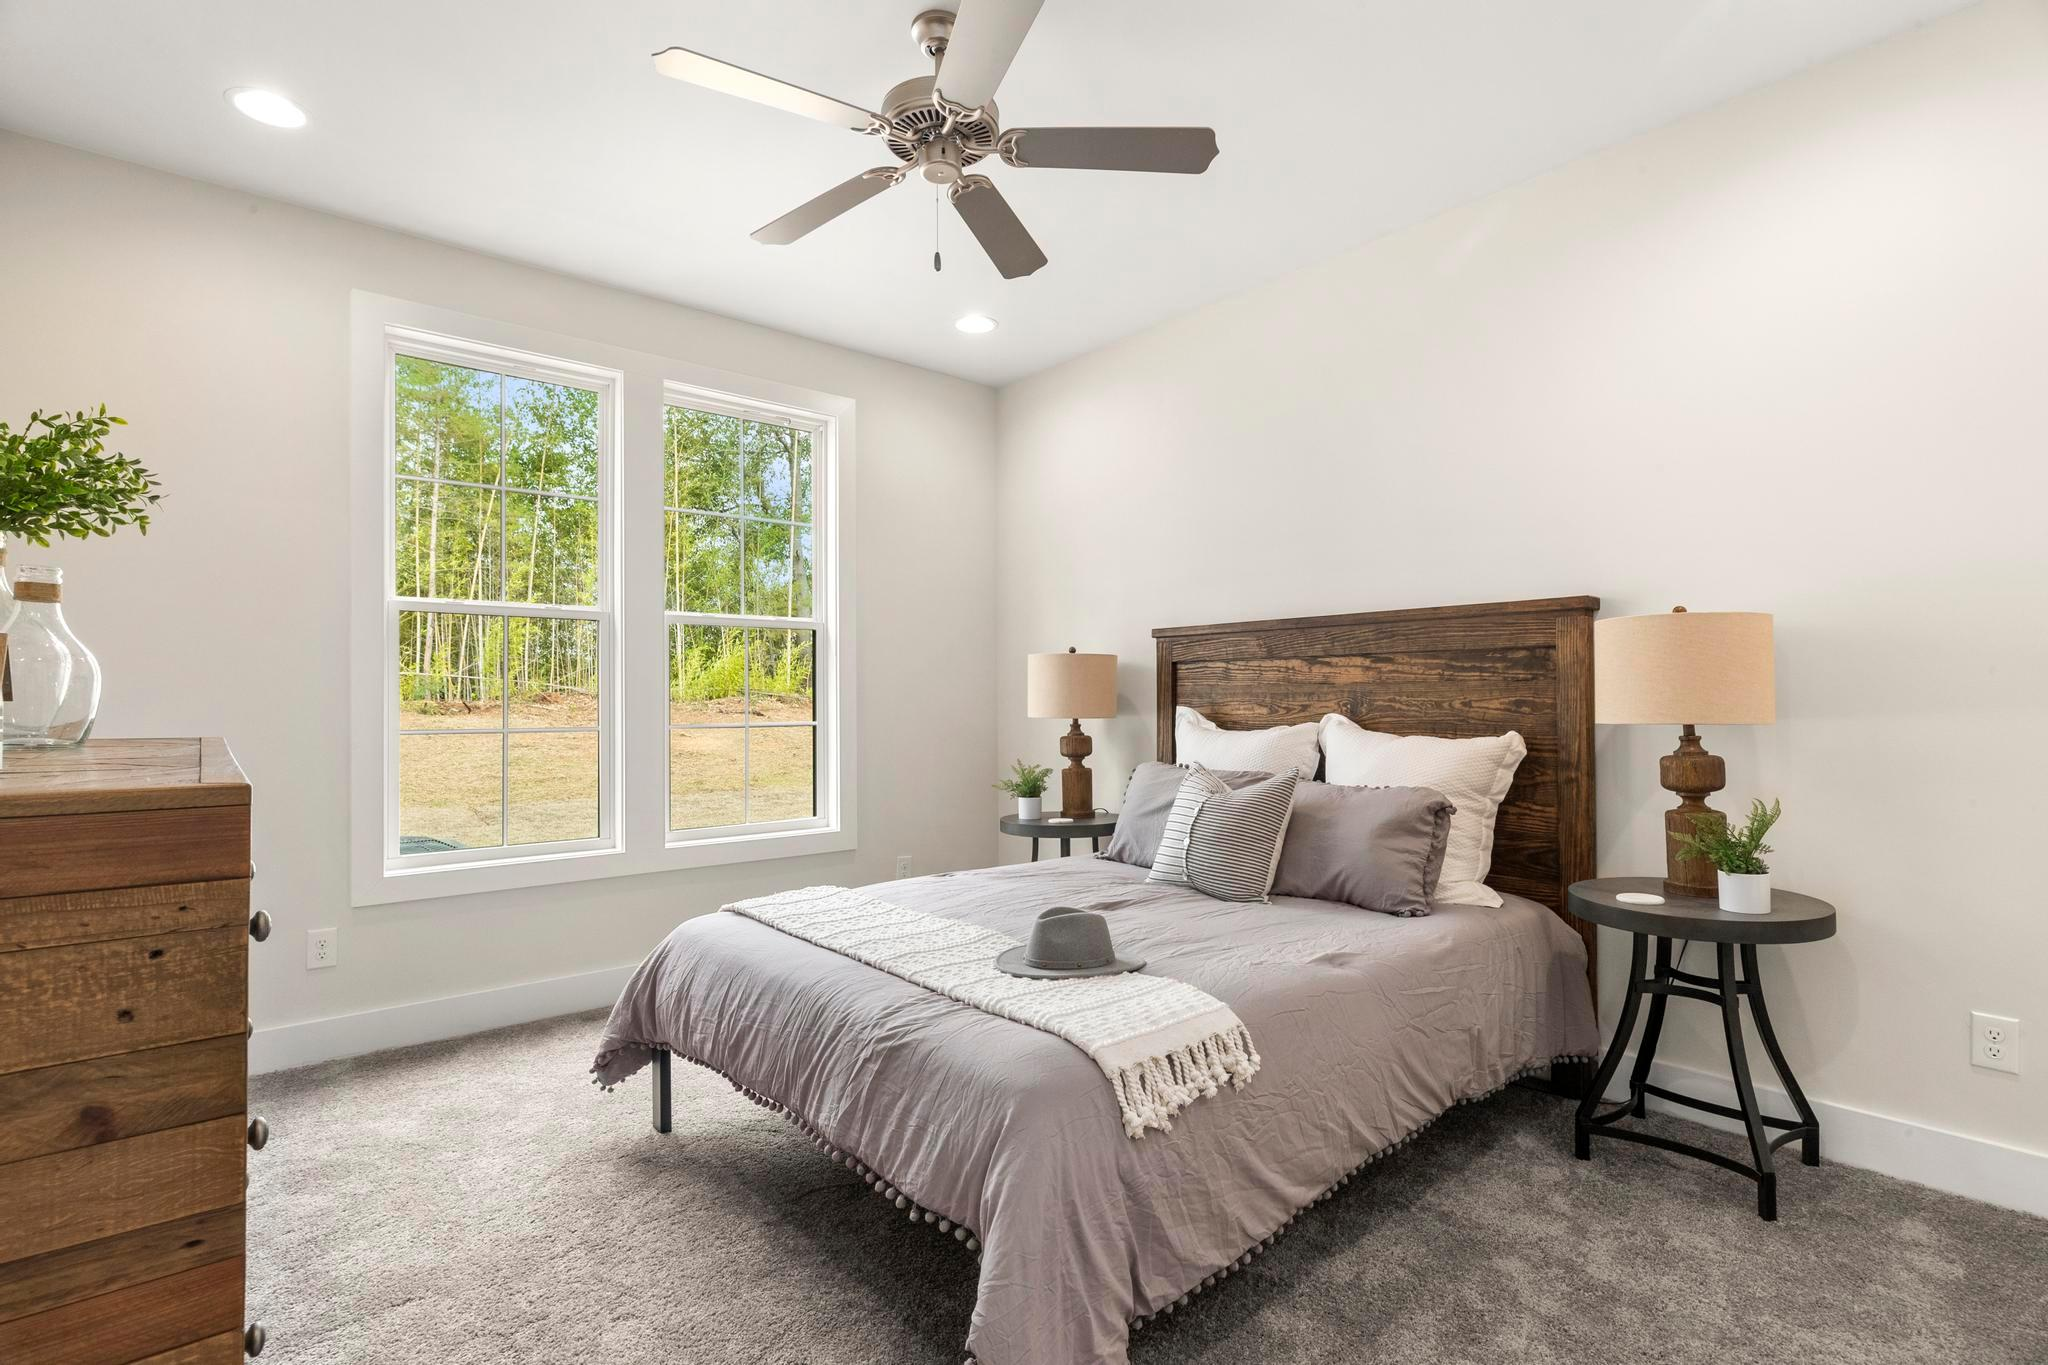 Bedroom featured in the 4 Bedroom Exterior Unit By Holland Homes in Auburn-Opelika, AL